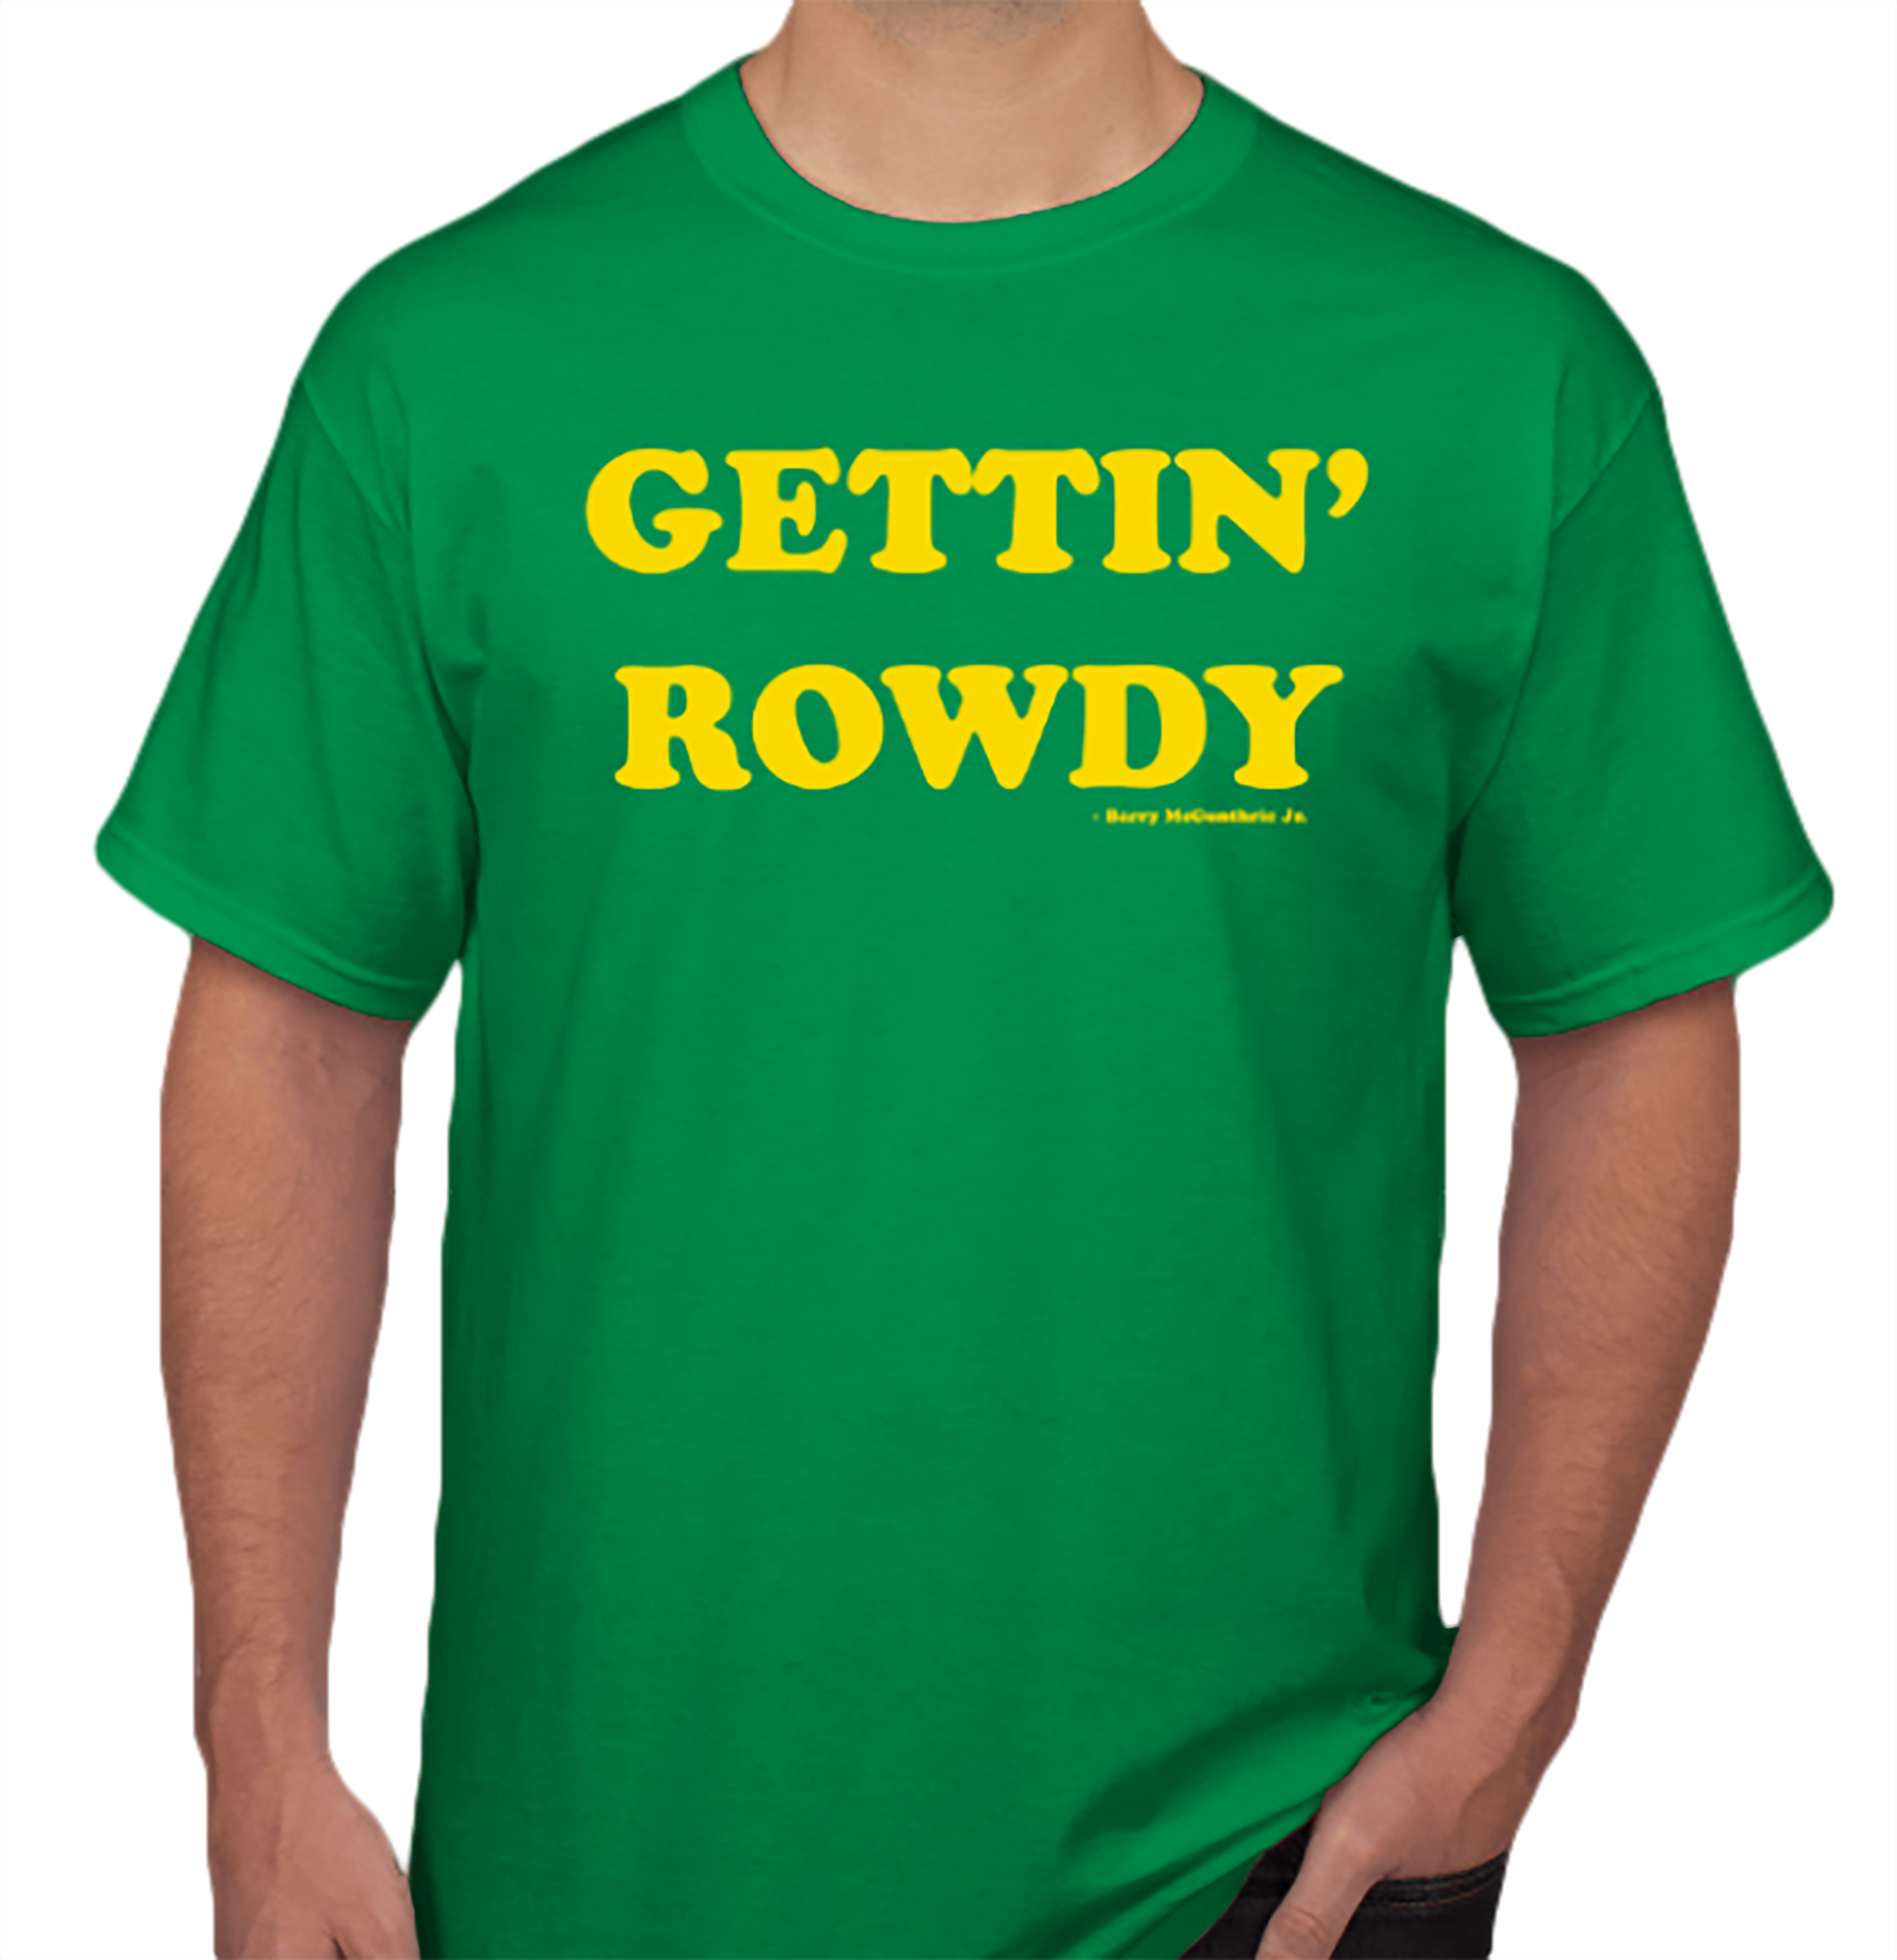 """Gettin' Rowdy Tees   We've all been saying it, now you can wear it proudly. Pre-Order the double-sided """"Gettin' Rowdy"""" tee — available in camouflage and green!"""